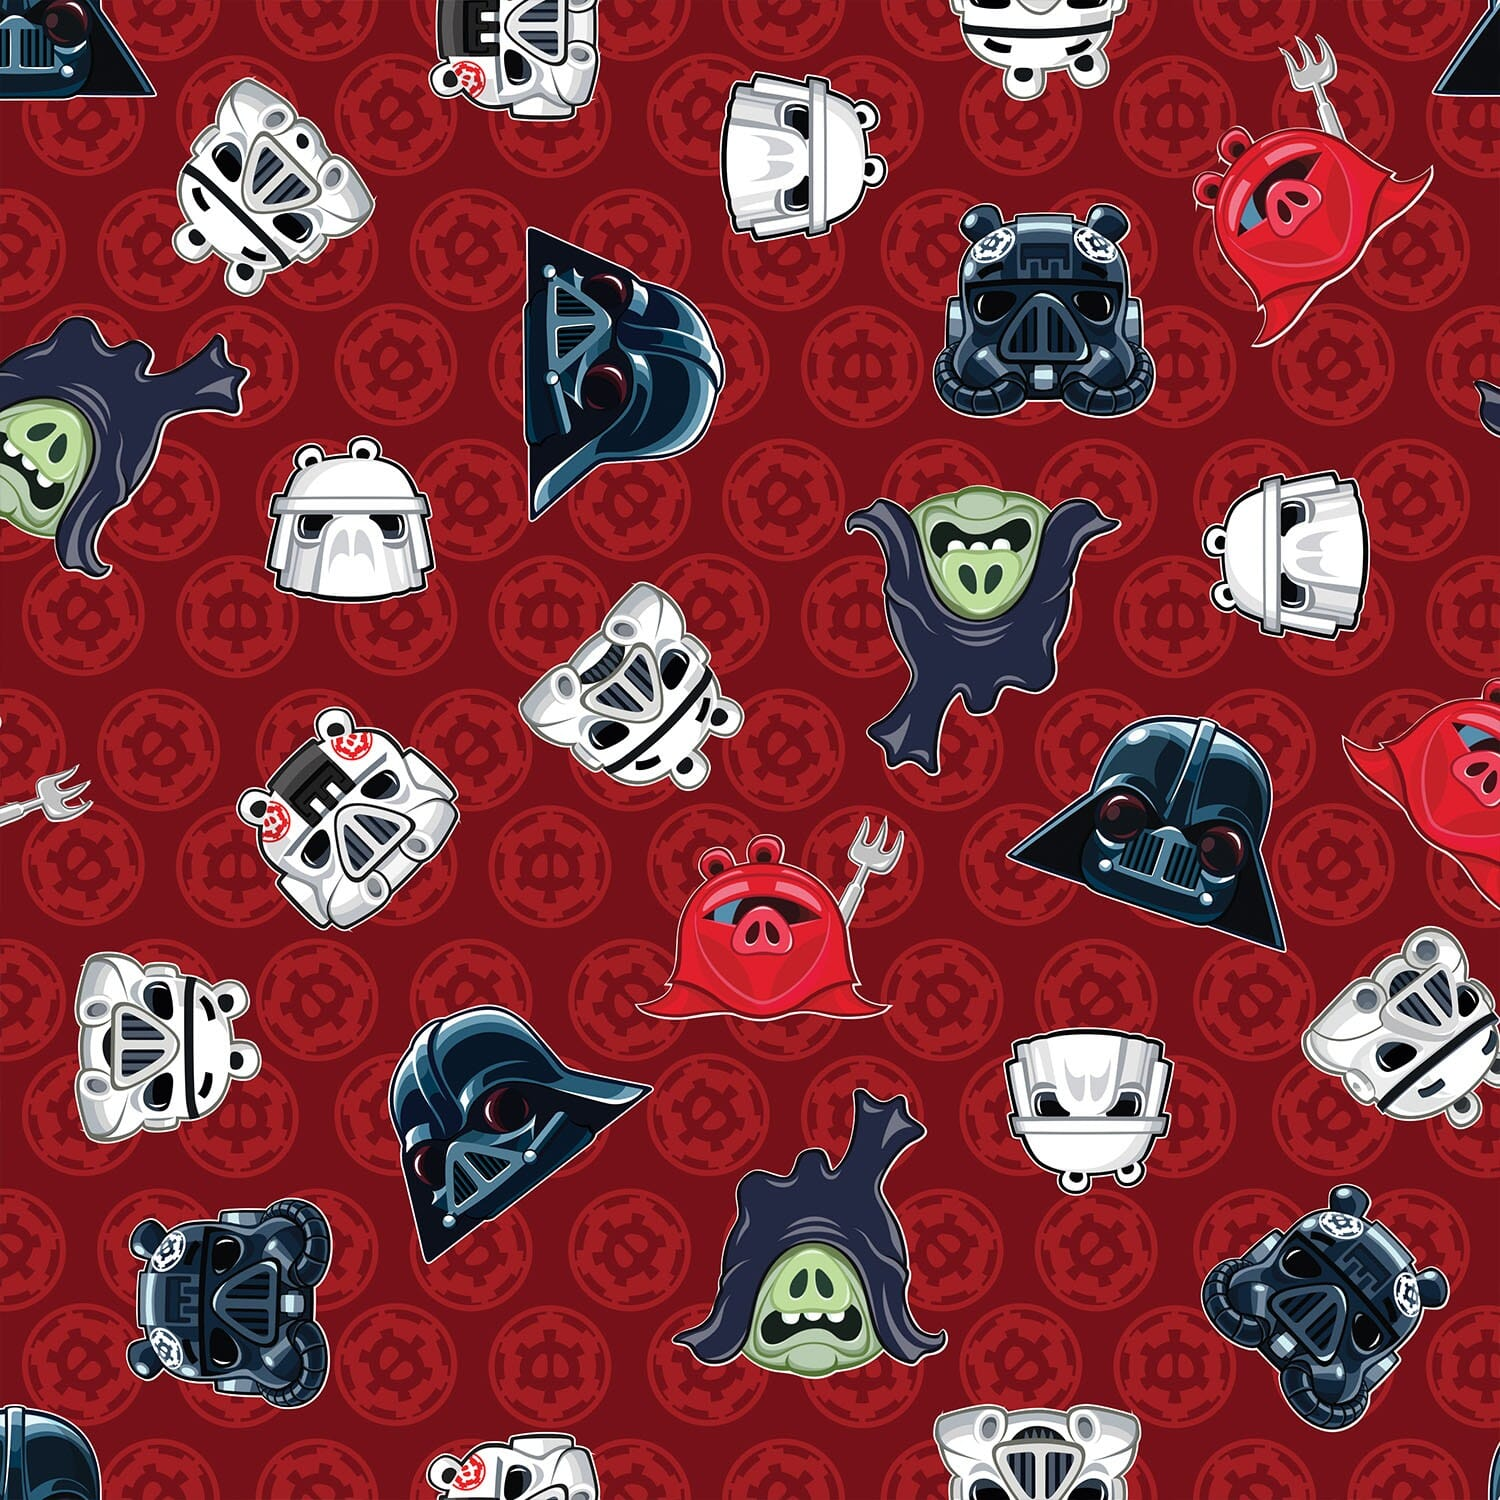 Patchwork Fabric Childrens Angry Birds Star Wars Fabric Heads of Empire Red